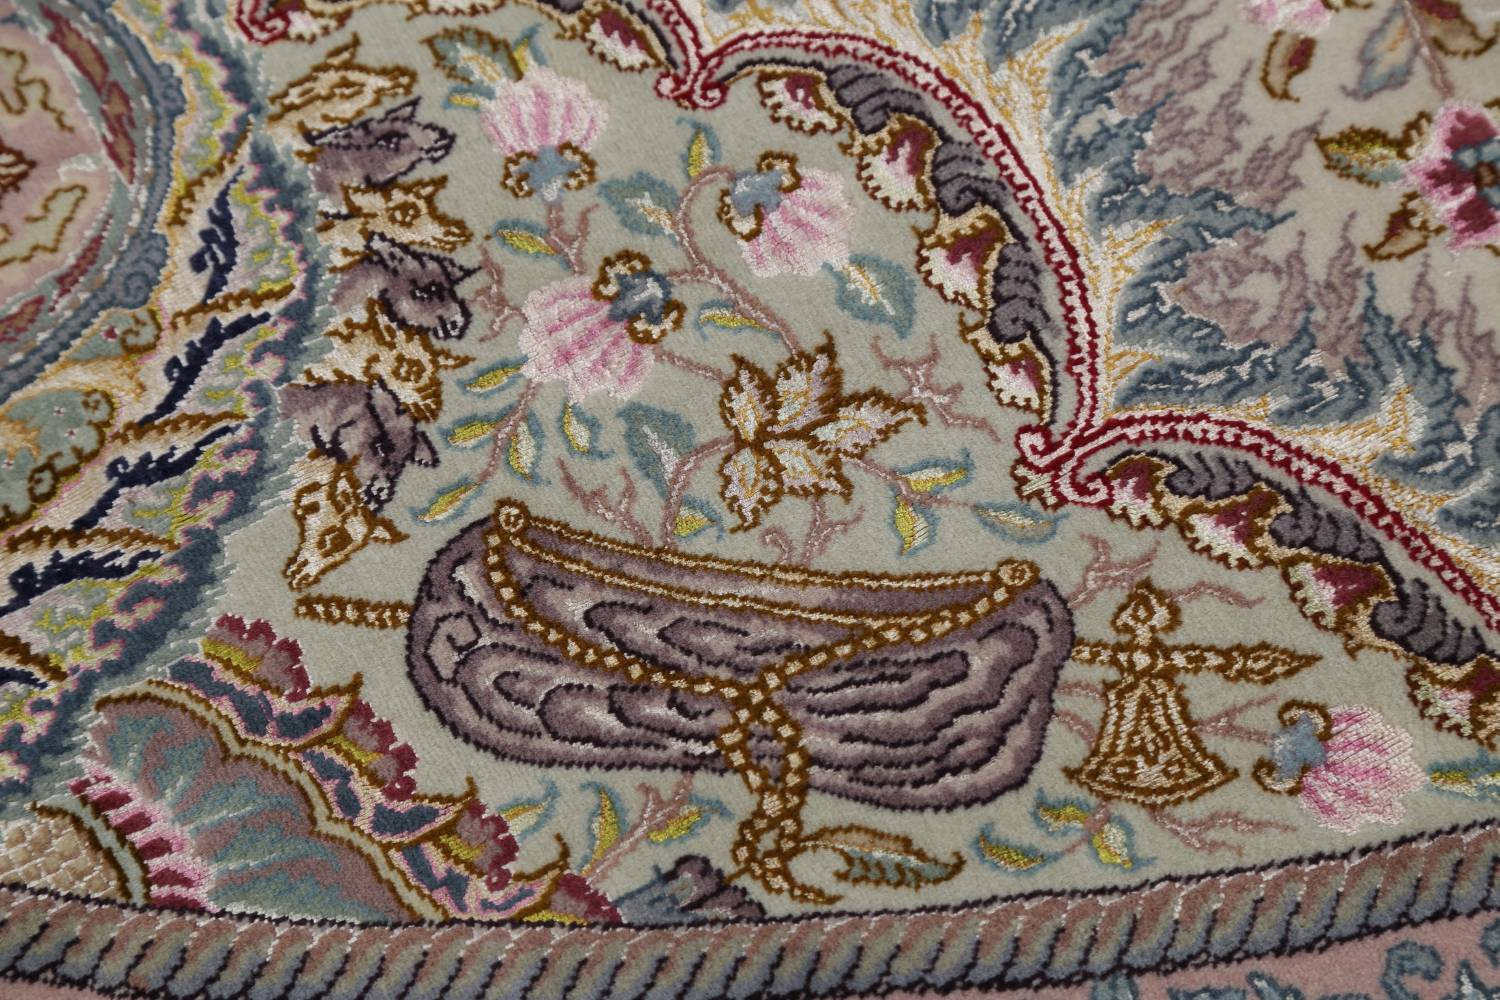 Antique Vegetable Dye Tabriz Persian Hand-Knotted 8x8 Wool Silk Round Rug image 9